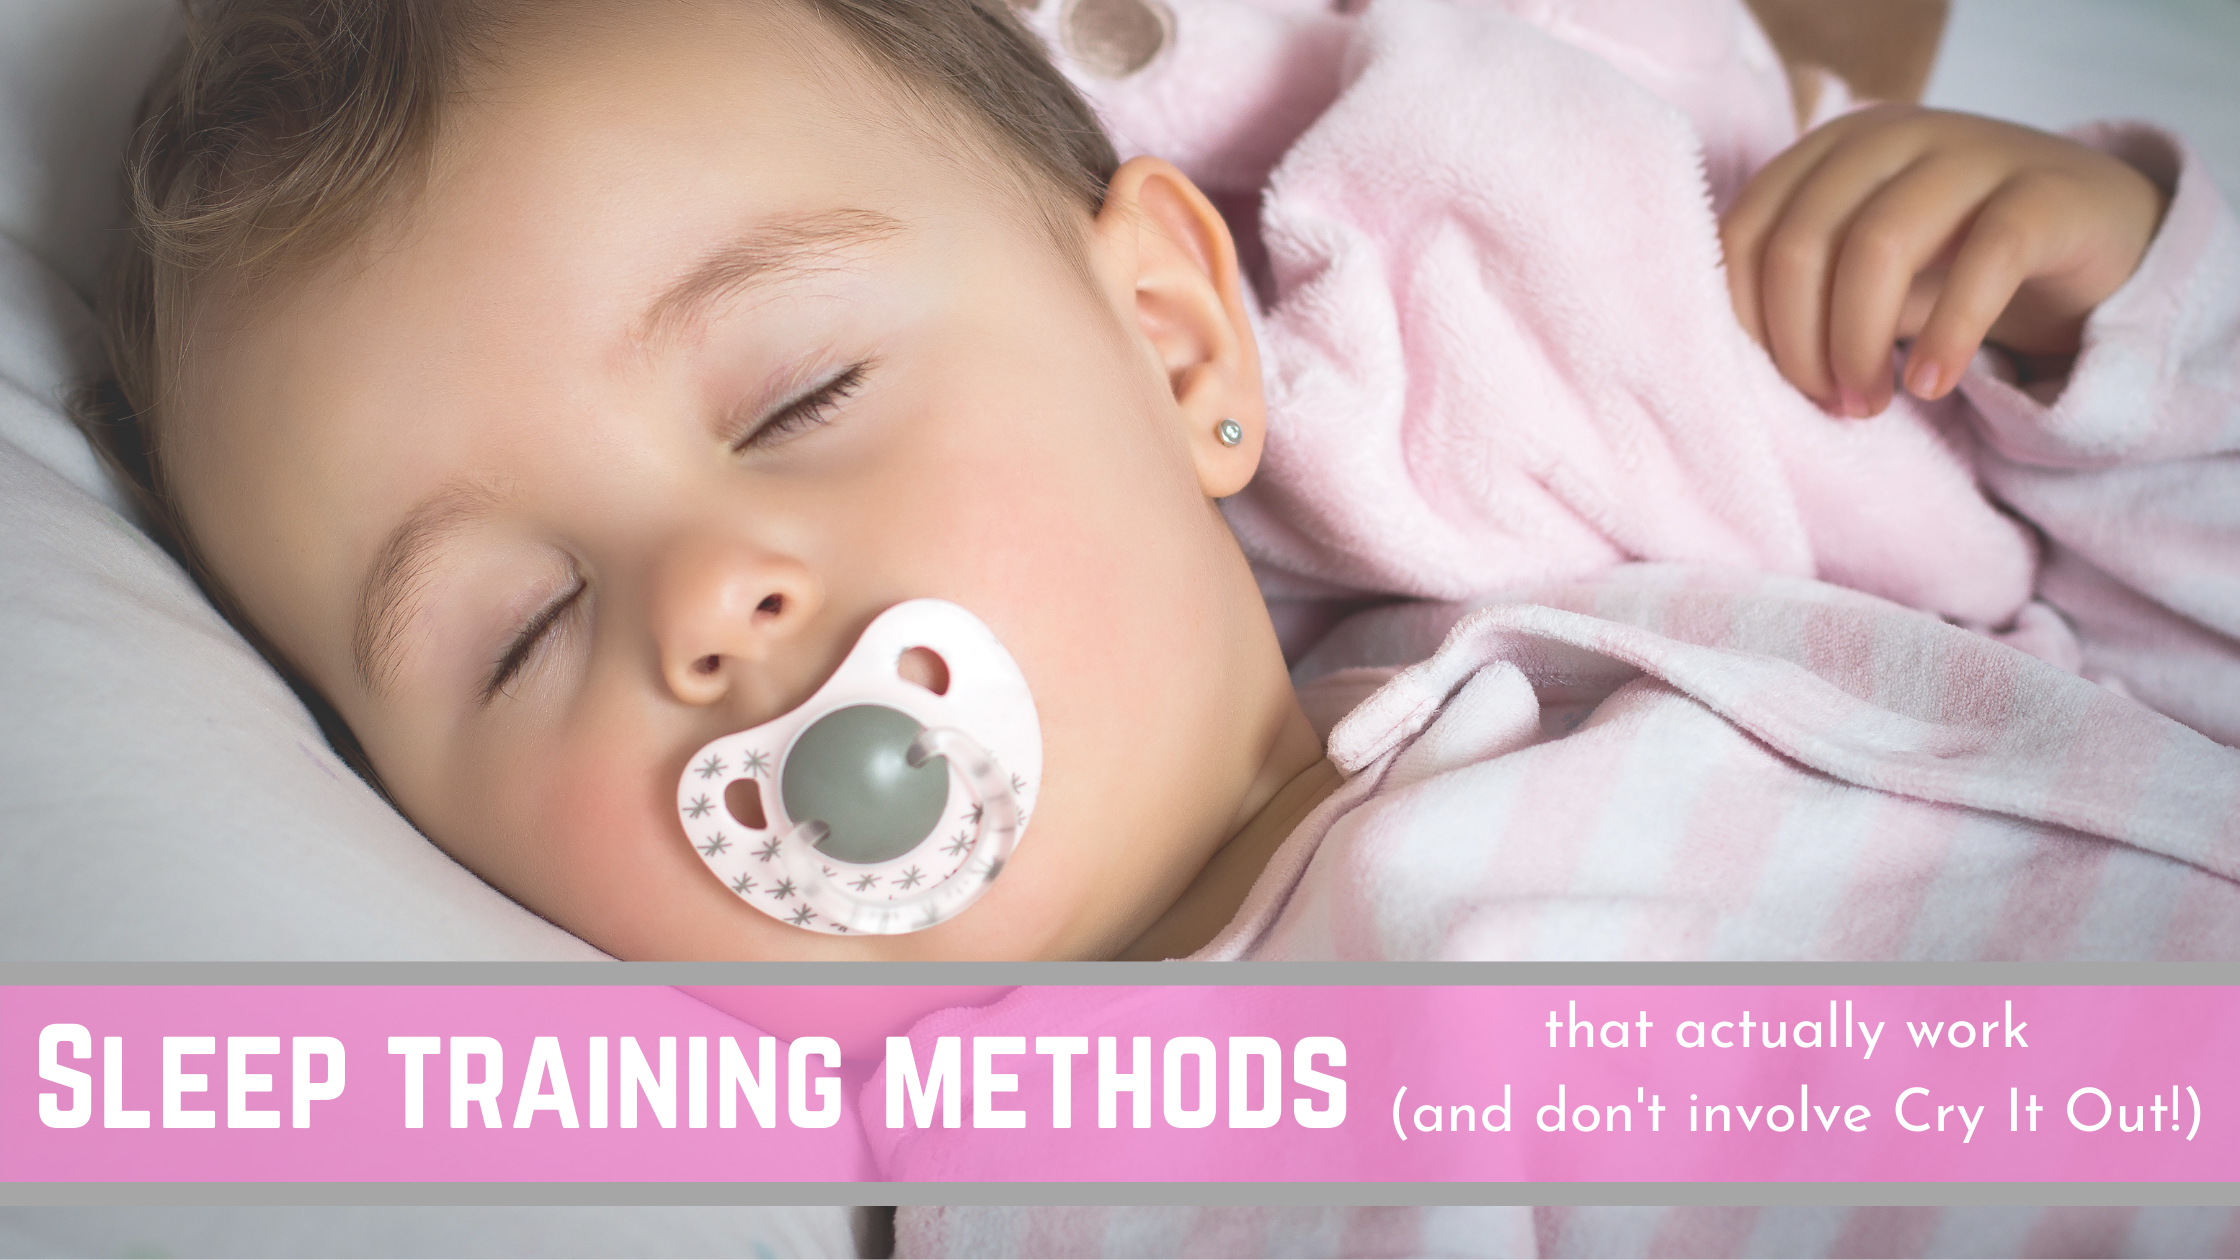 6 Sleep Training Methods that ACTUALLY work (and that don't involve Cry It Out!)